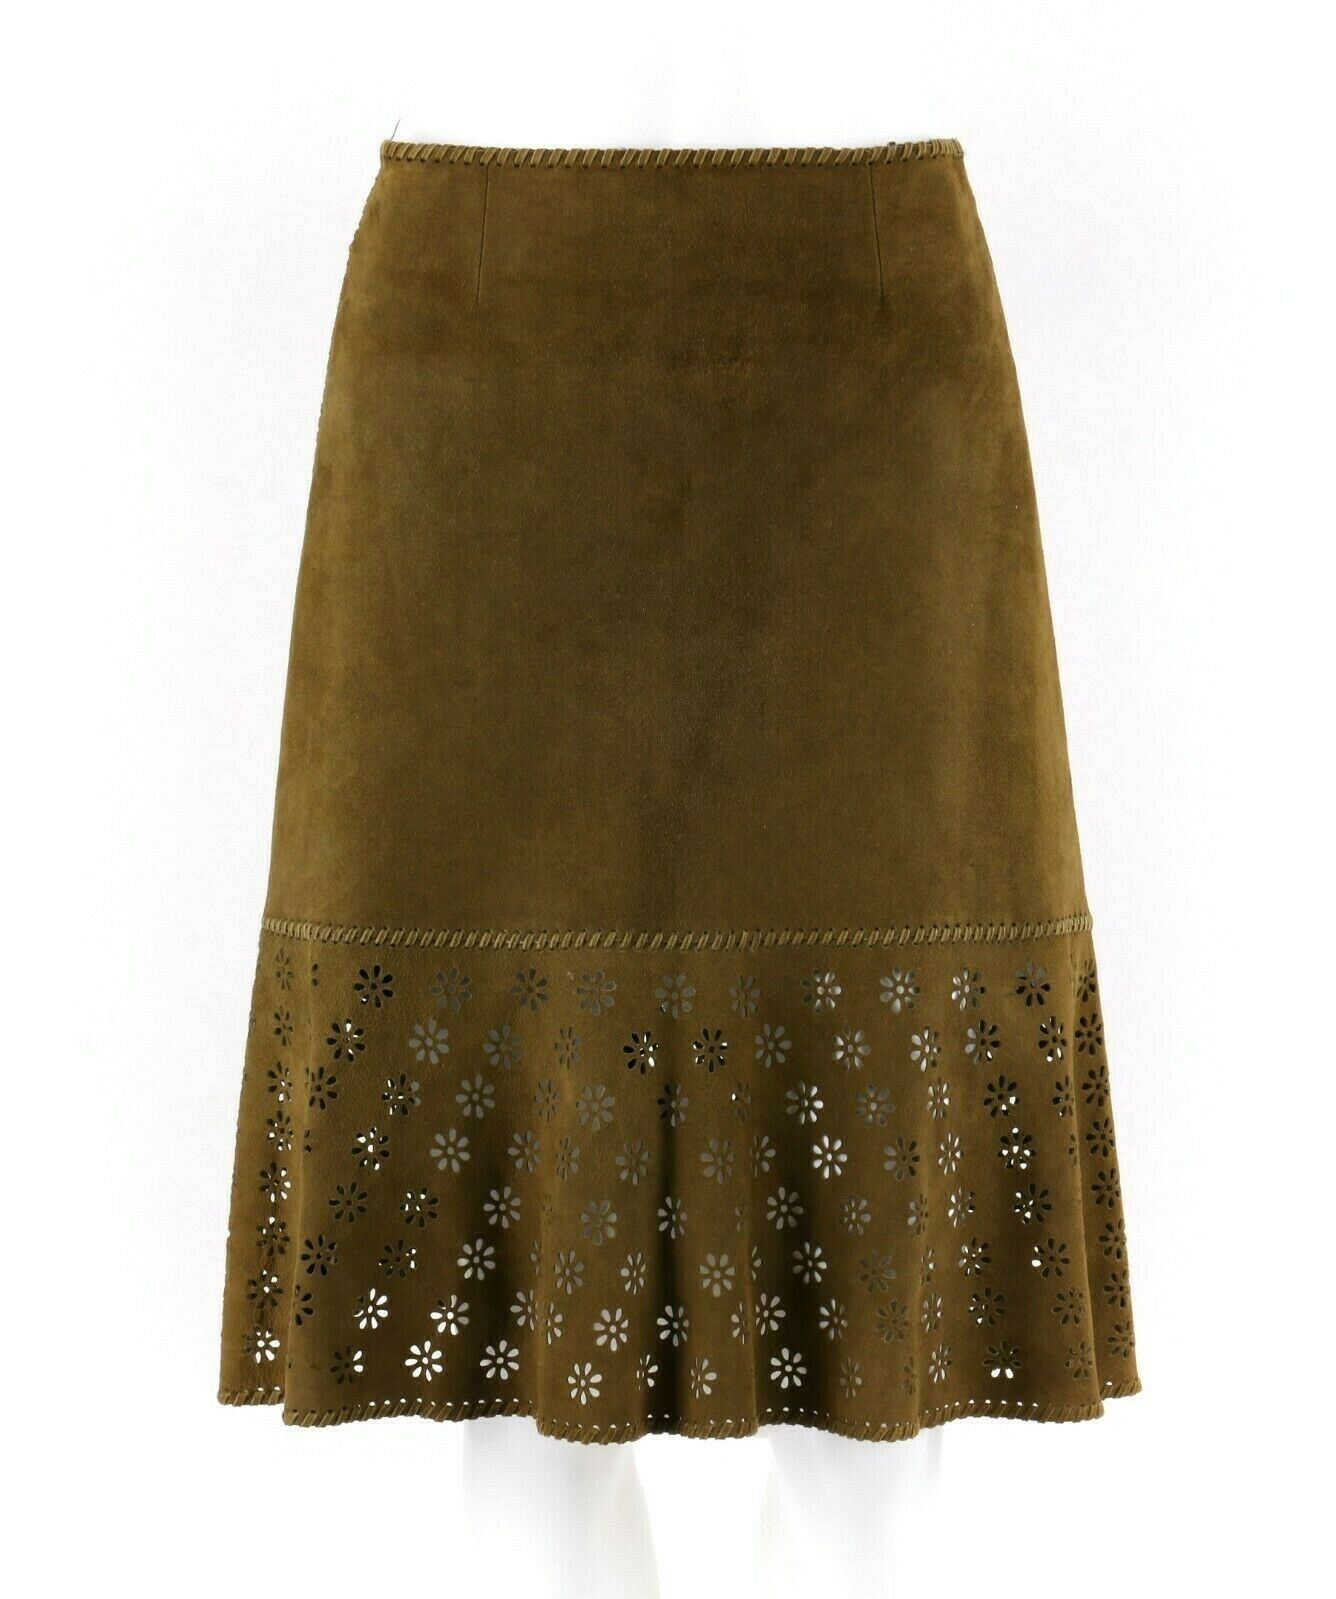 CELINE Finition Main Olive Green Suede Leather Floral Cut Work Skirt Size 36